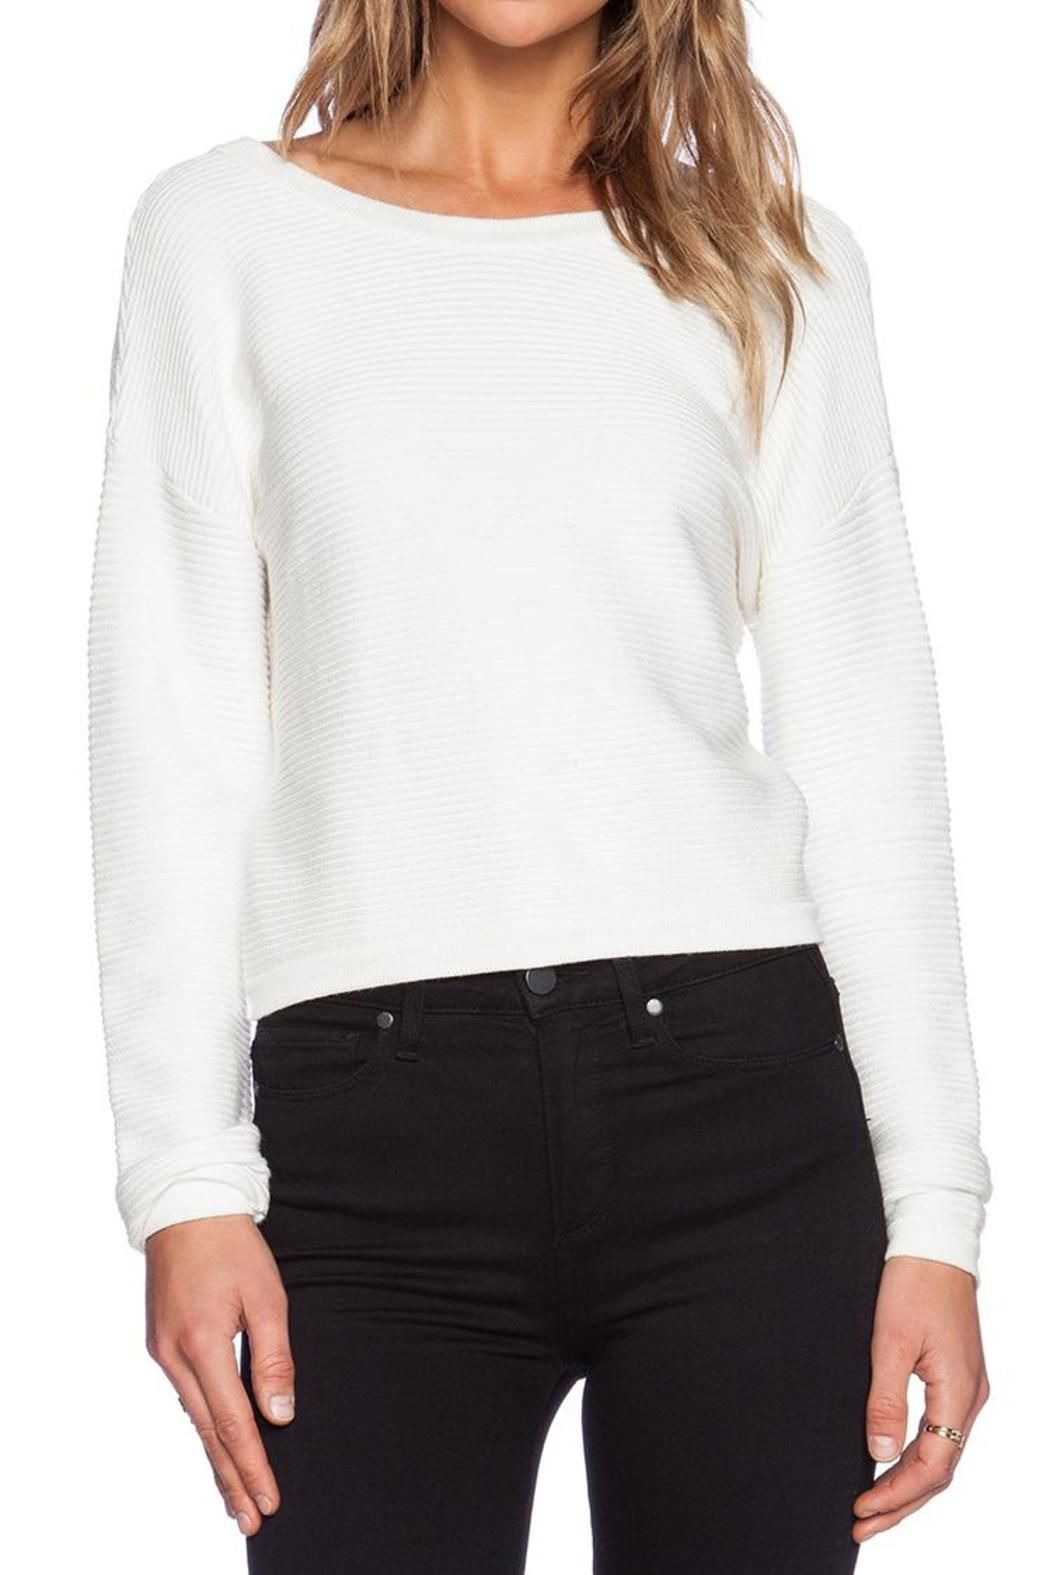 Assali Snatch Sweater | White long sleeve, Scoop neck and Boutique